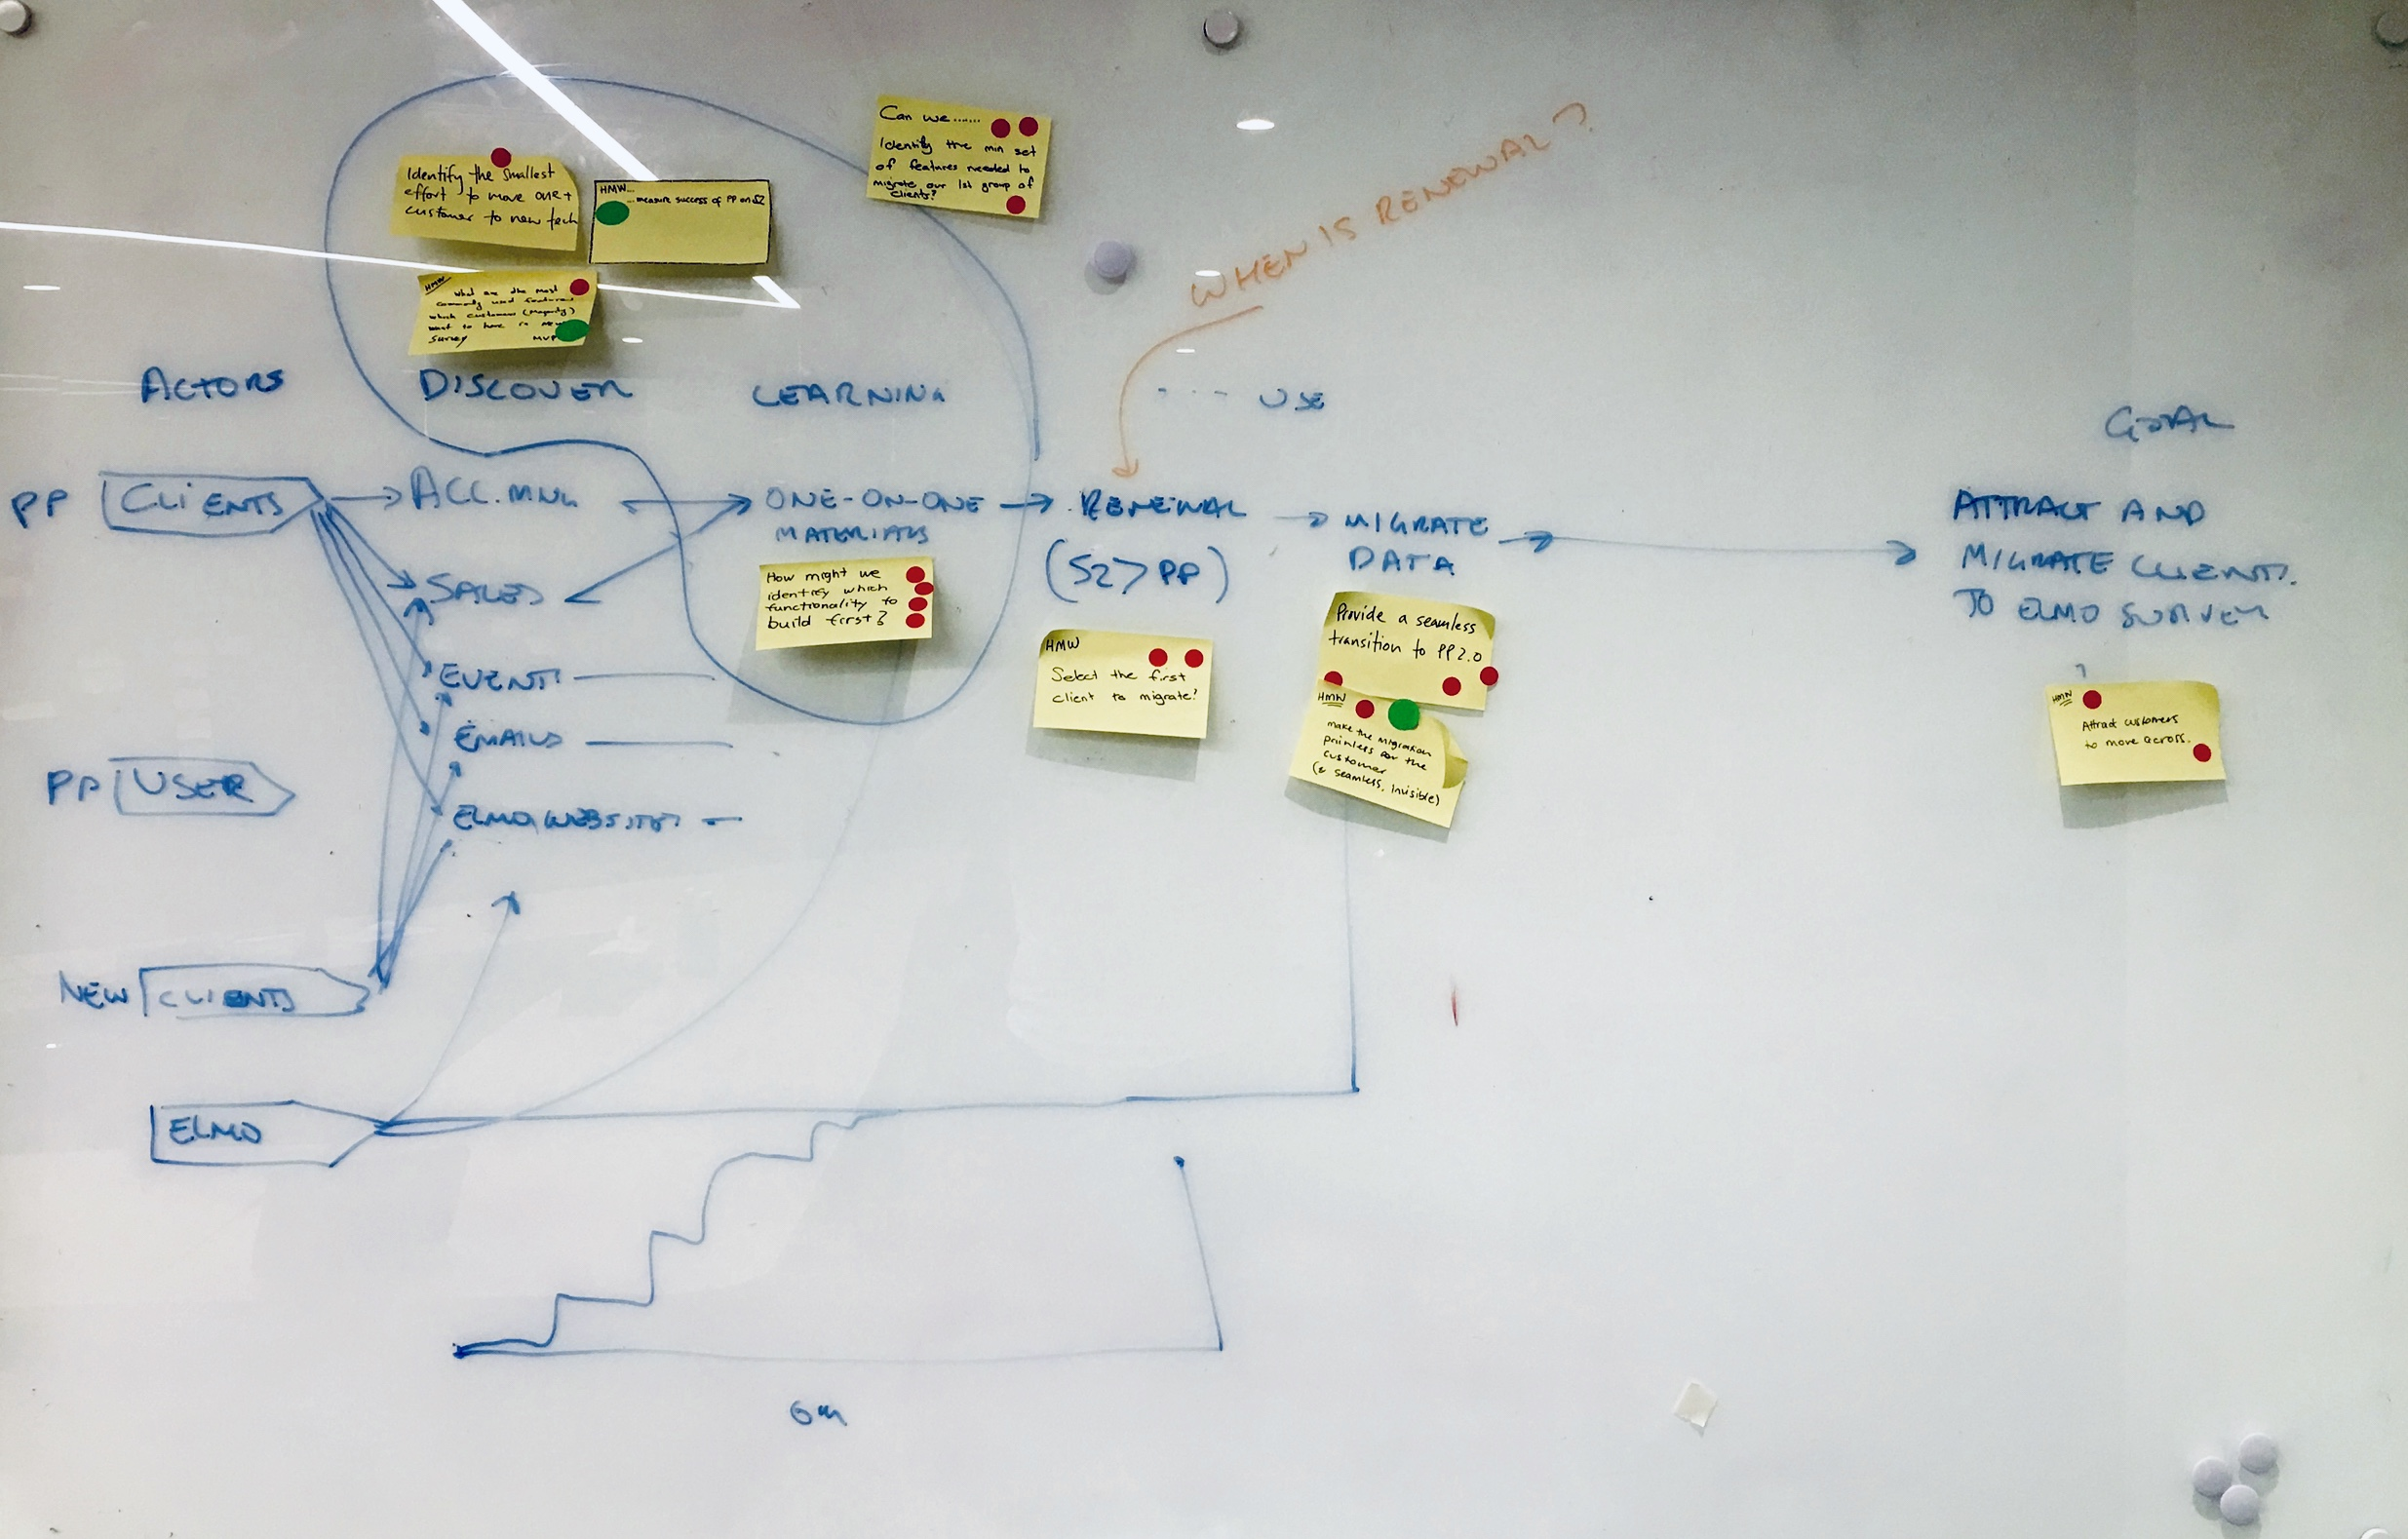 Customer transition mapping session